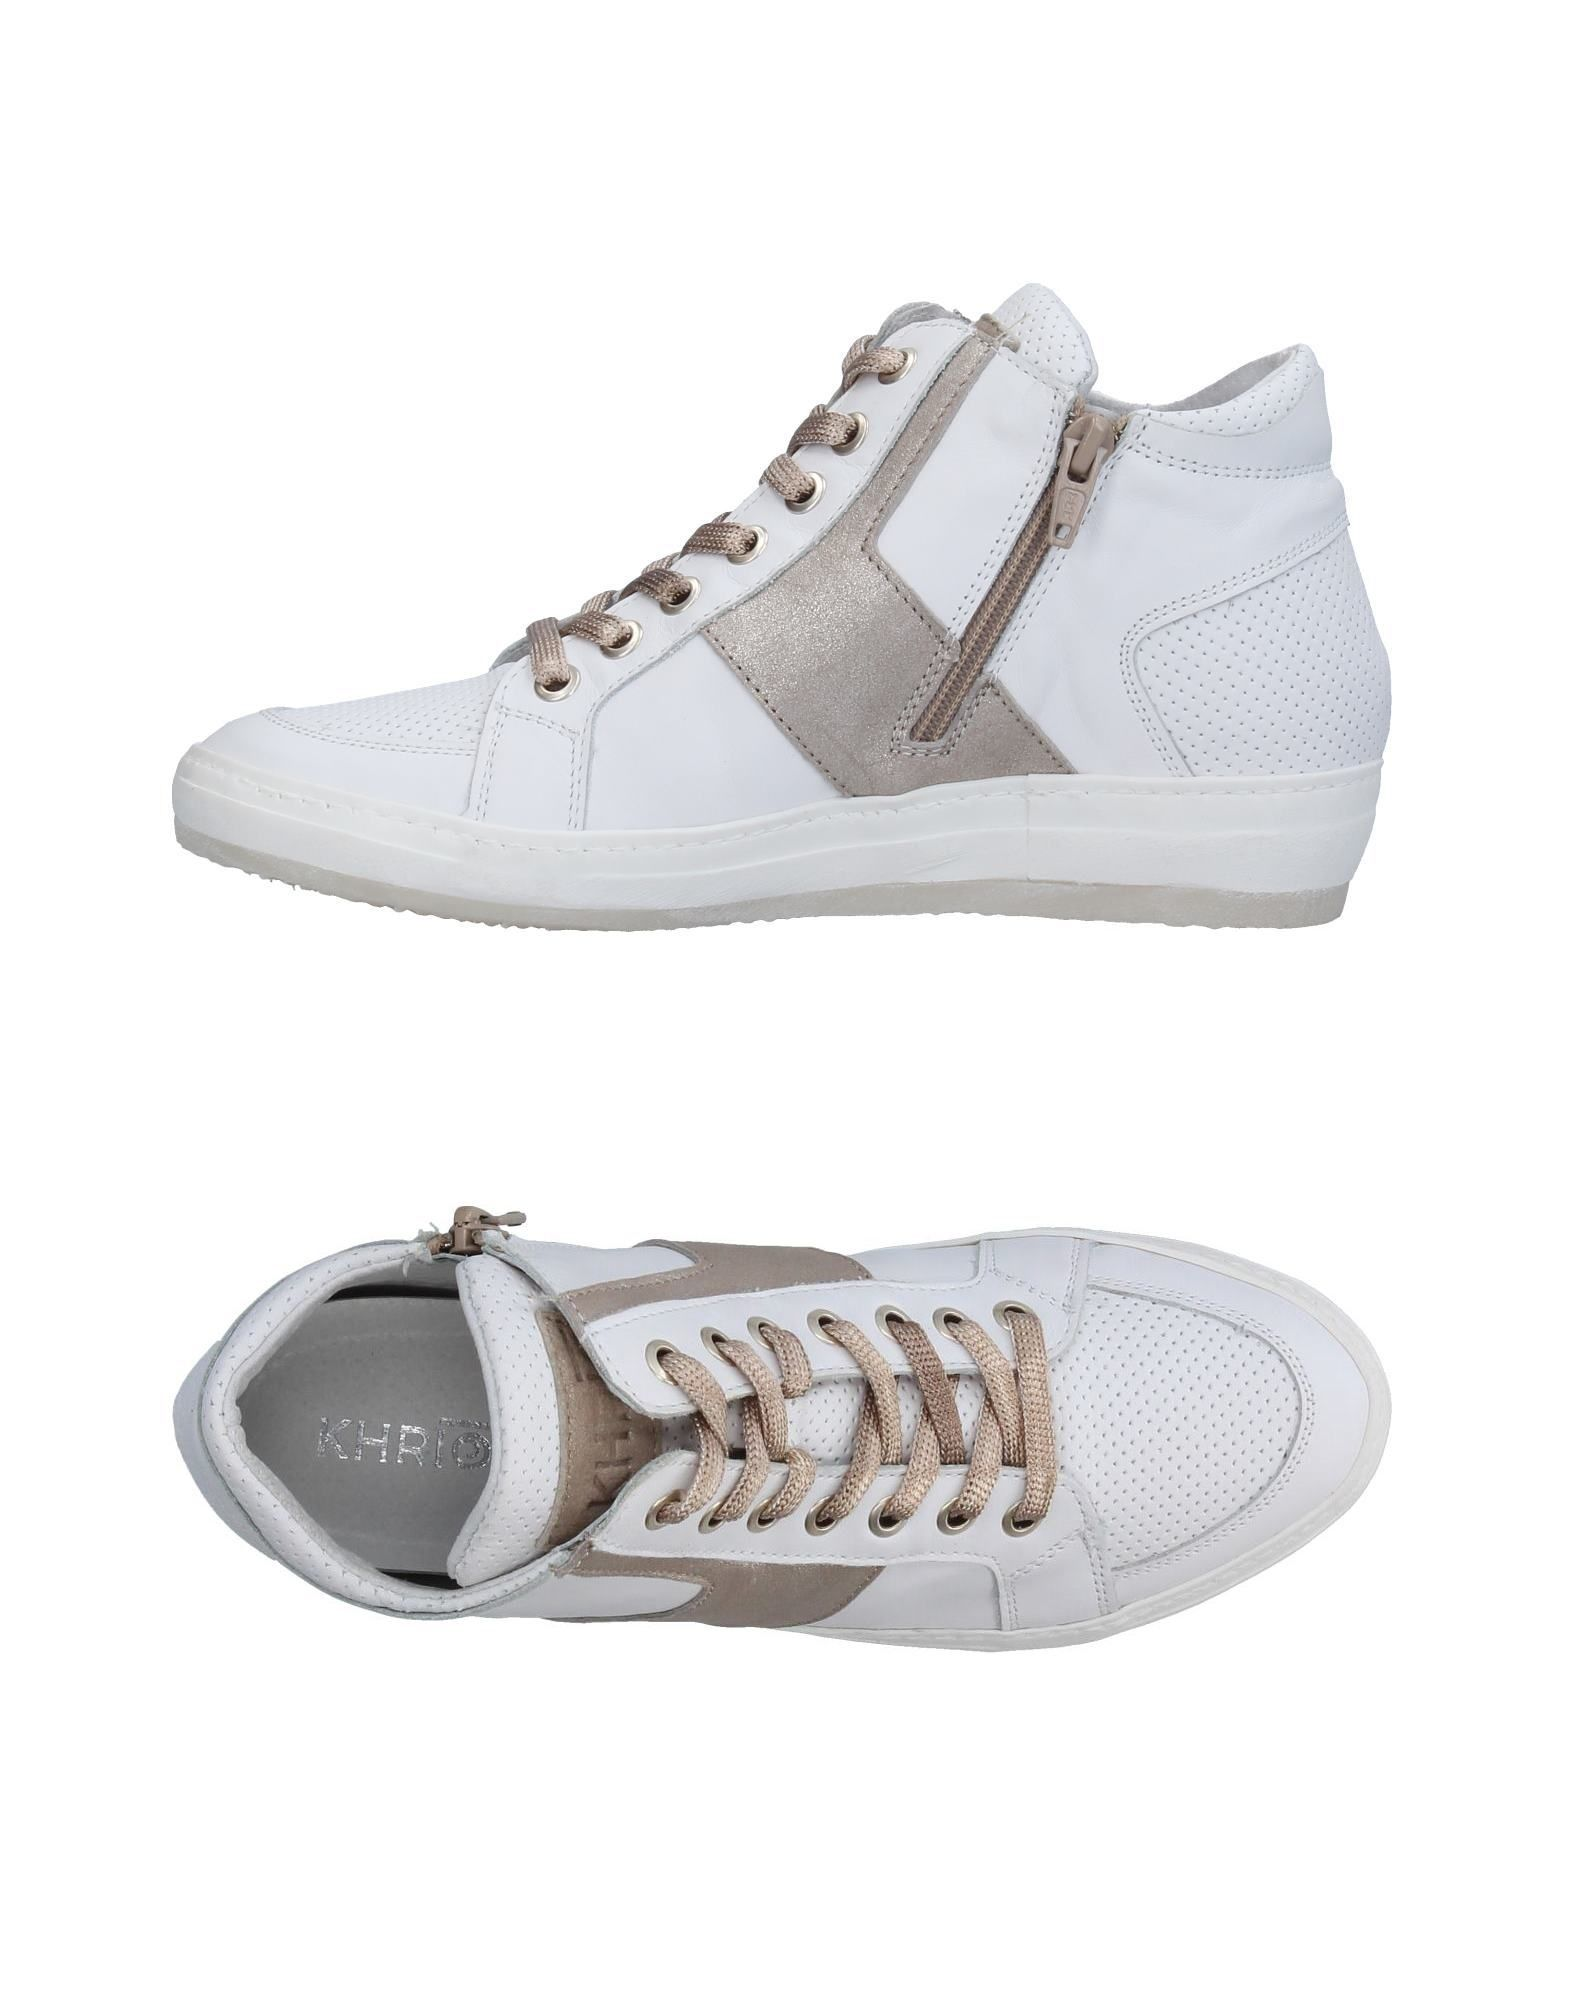 Moda 11327056WM Sneakers Khrio' Donna - 11327056WM Moda ca222a